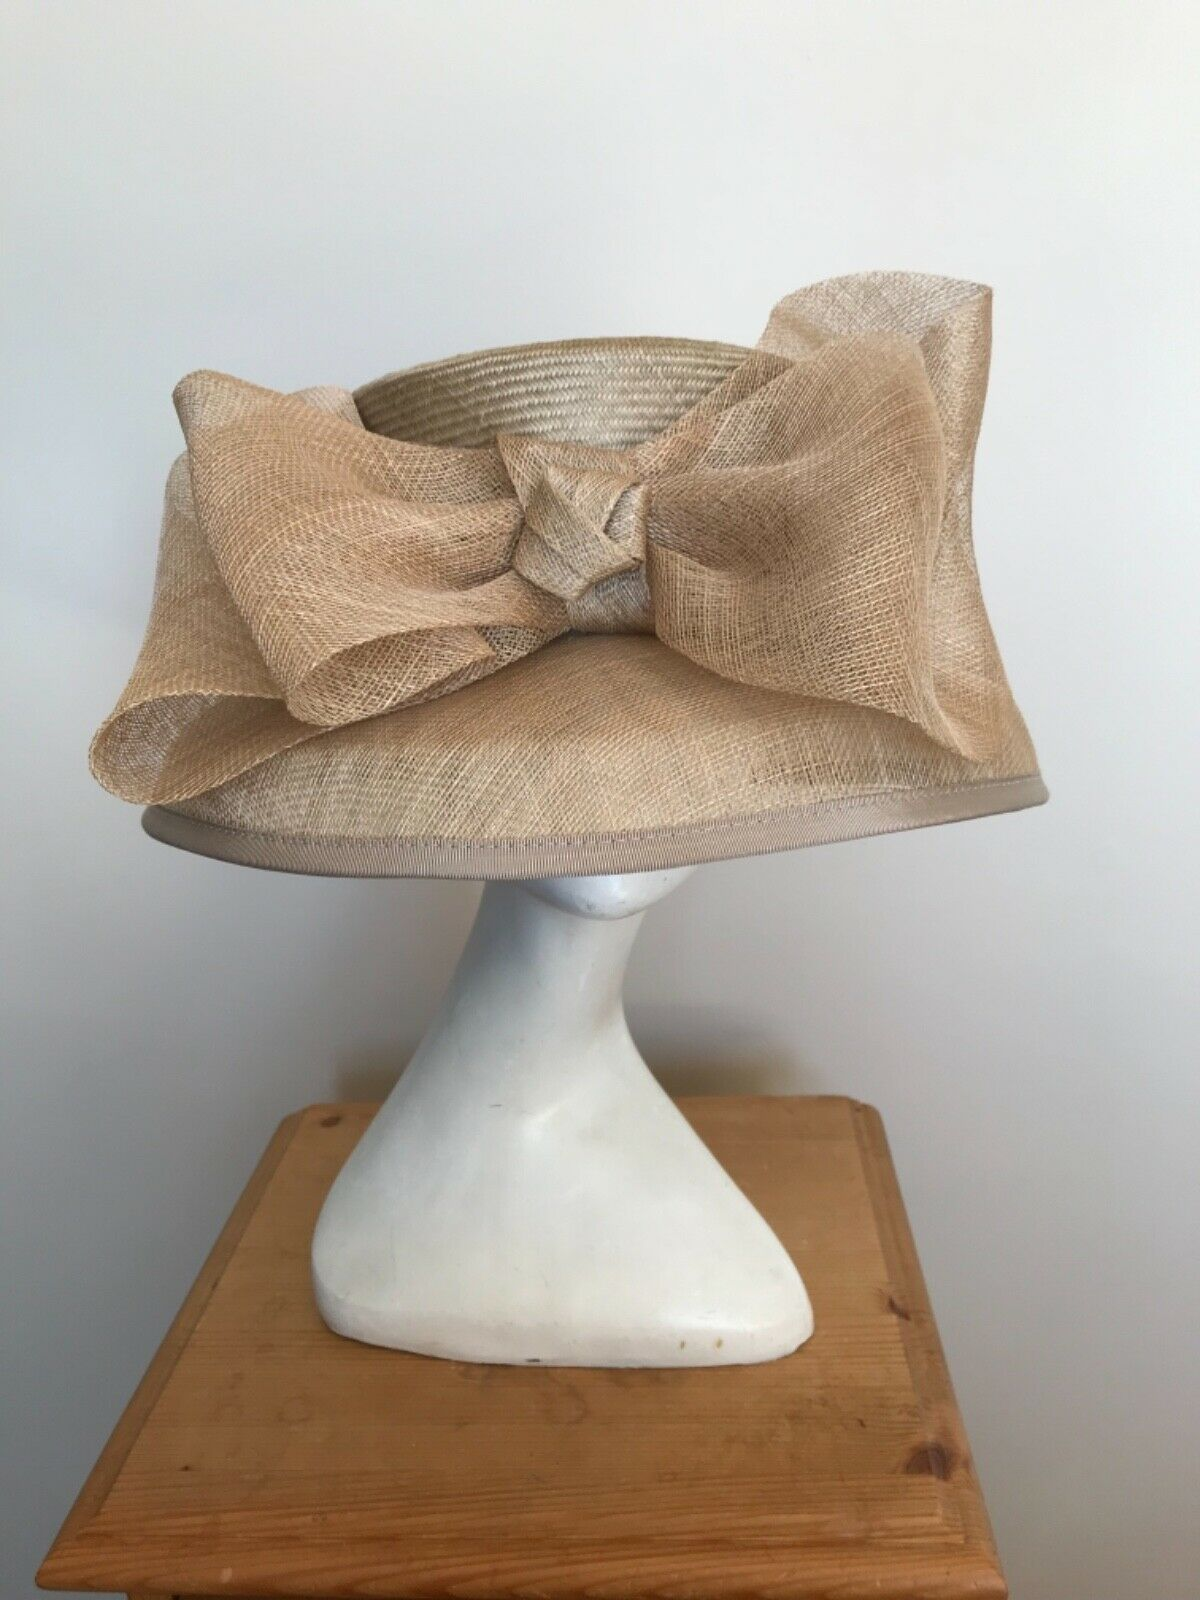 New Taupe Hat with Front Bow Detail by Headways for Frank Usher - Wedding Races